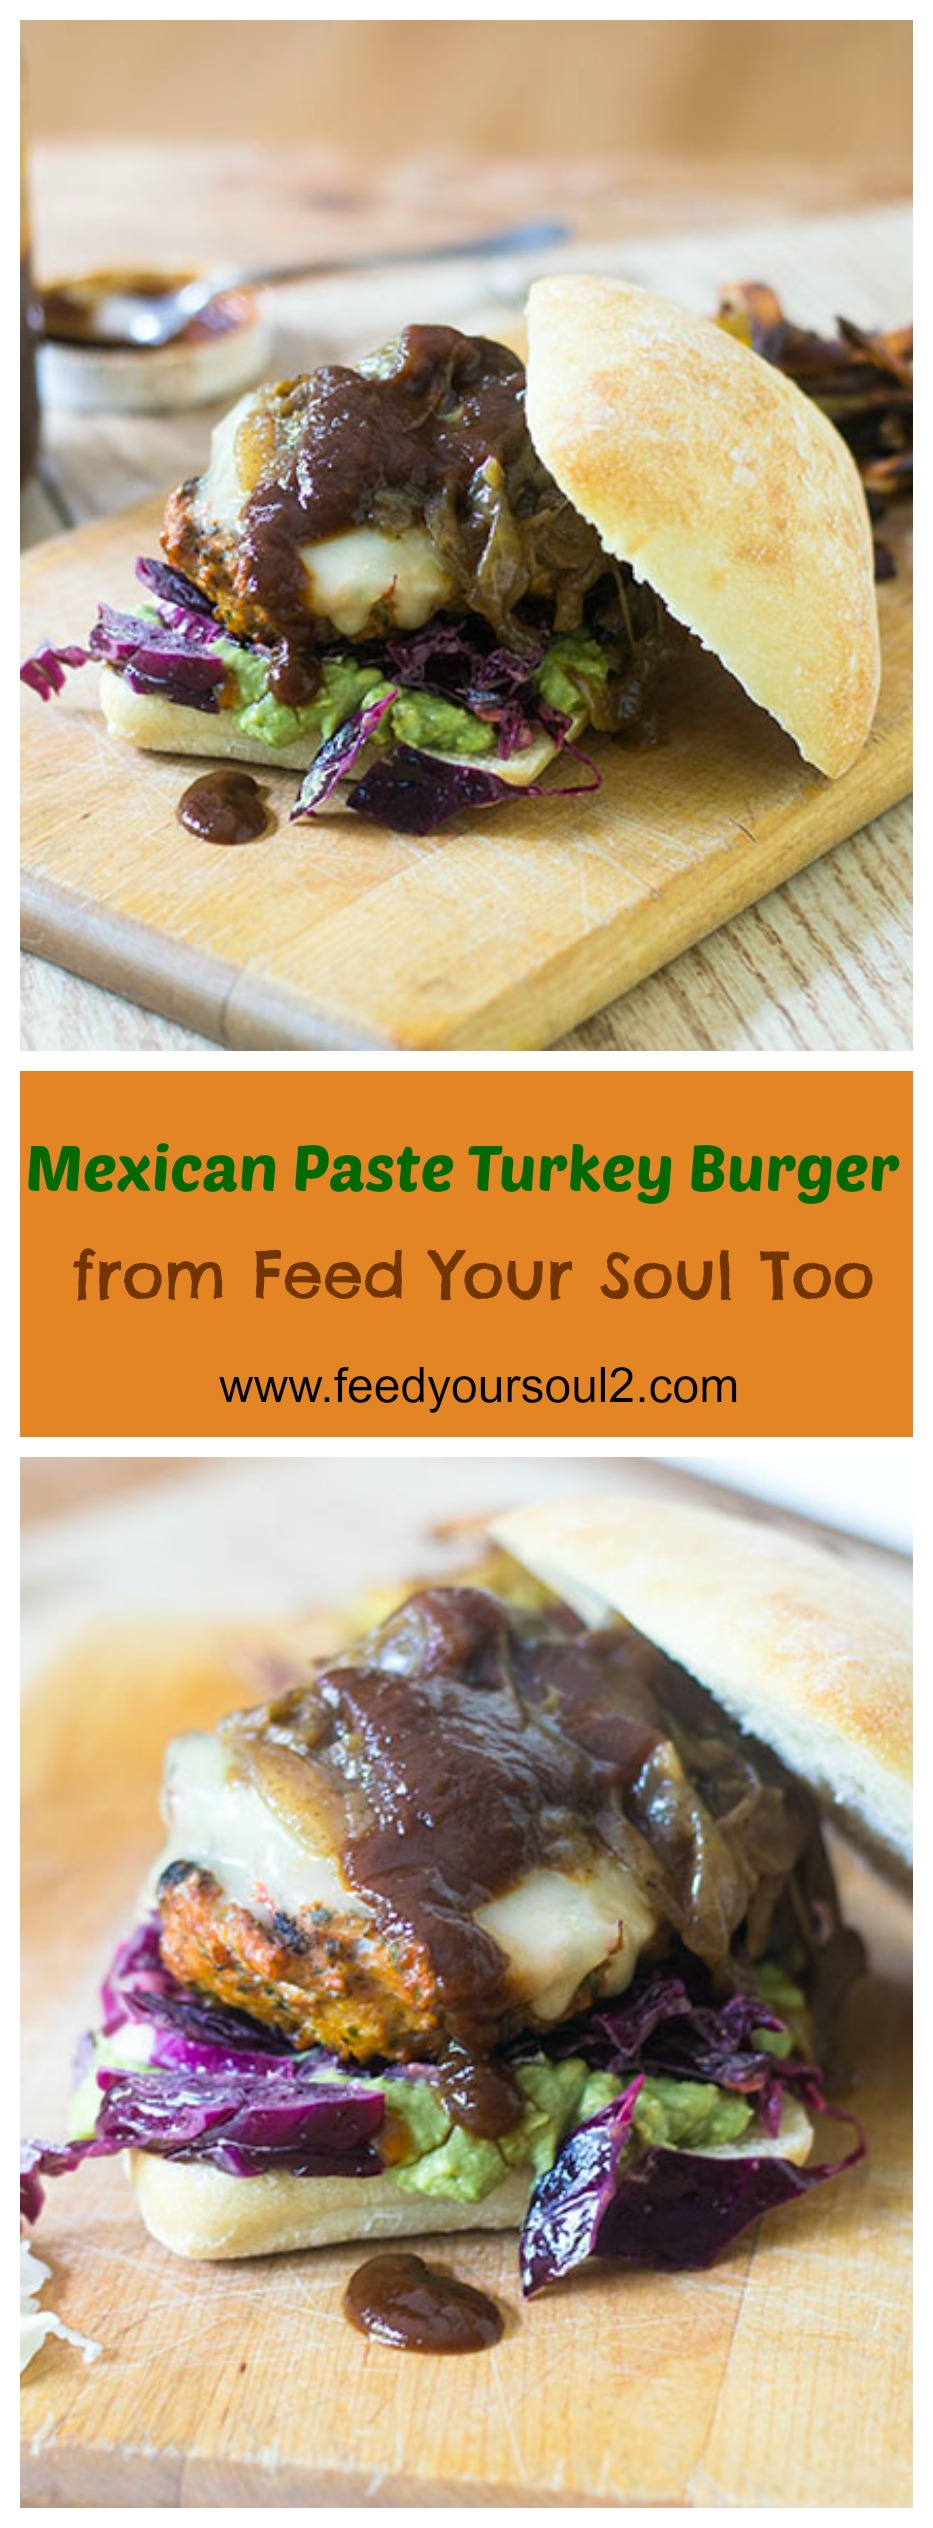 Mexican Paste Turkey Burger #burger #Mexicanfood #paste | feedyoursoul2.com